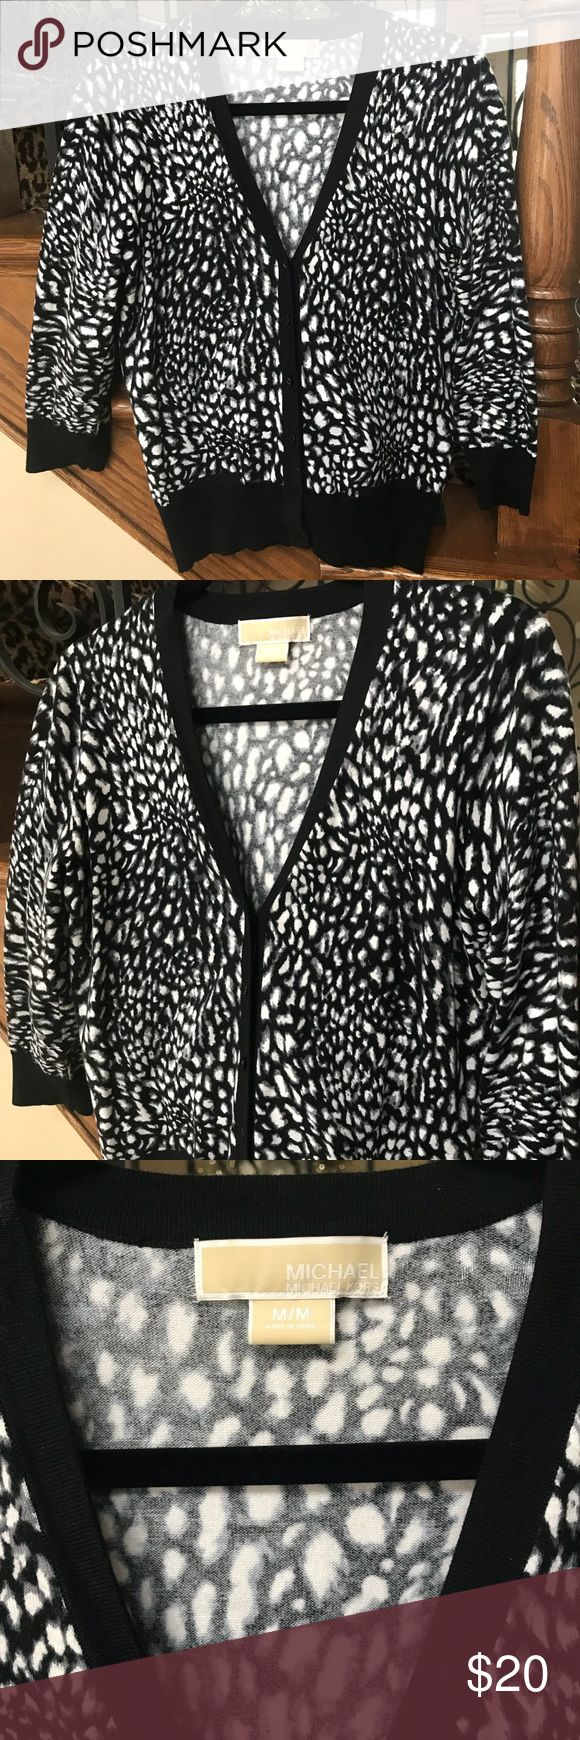 Black and white Michael Kors cardigan. Size M Black/white/gray animal print cardigan sweater. 3/4 sleeves. MK button closure. Little hidden front pockets. Super cute over a LBD!!  Like new. MICHAEL Michael Kors Sweaters Cardigans